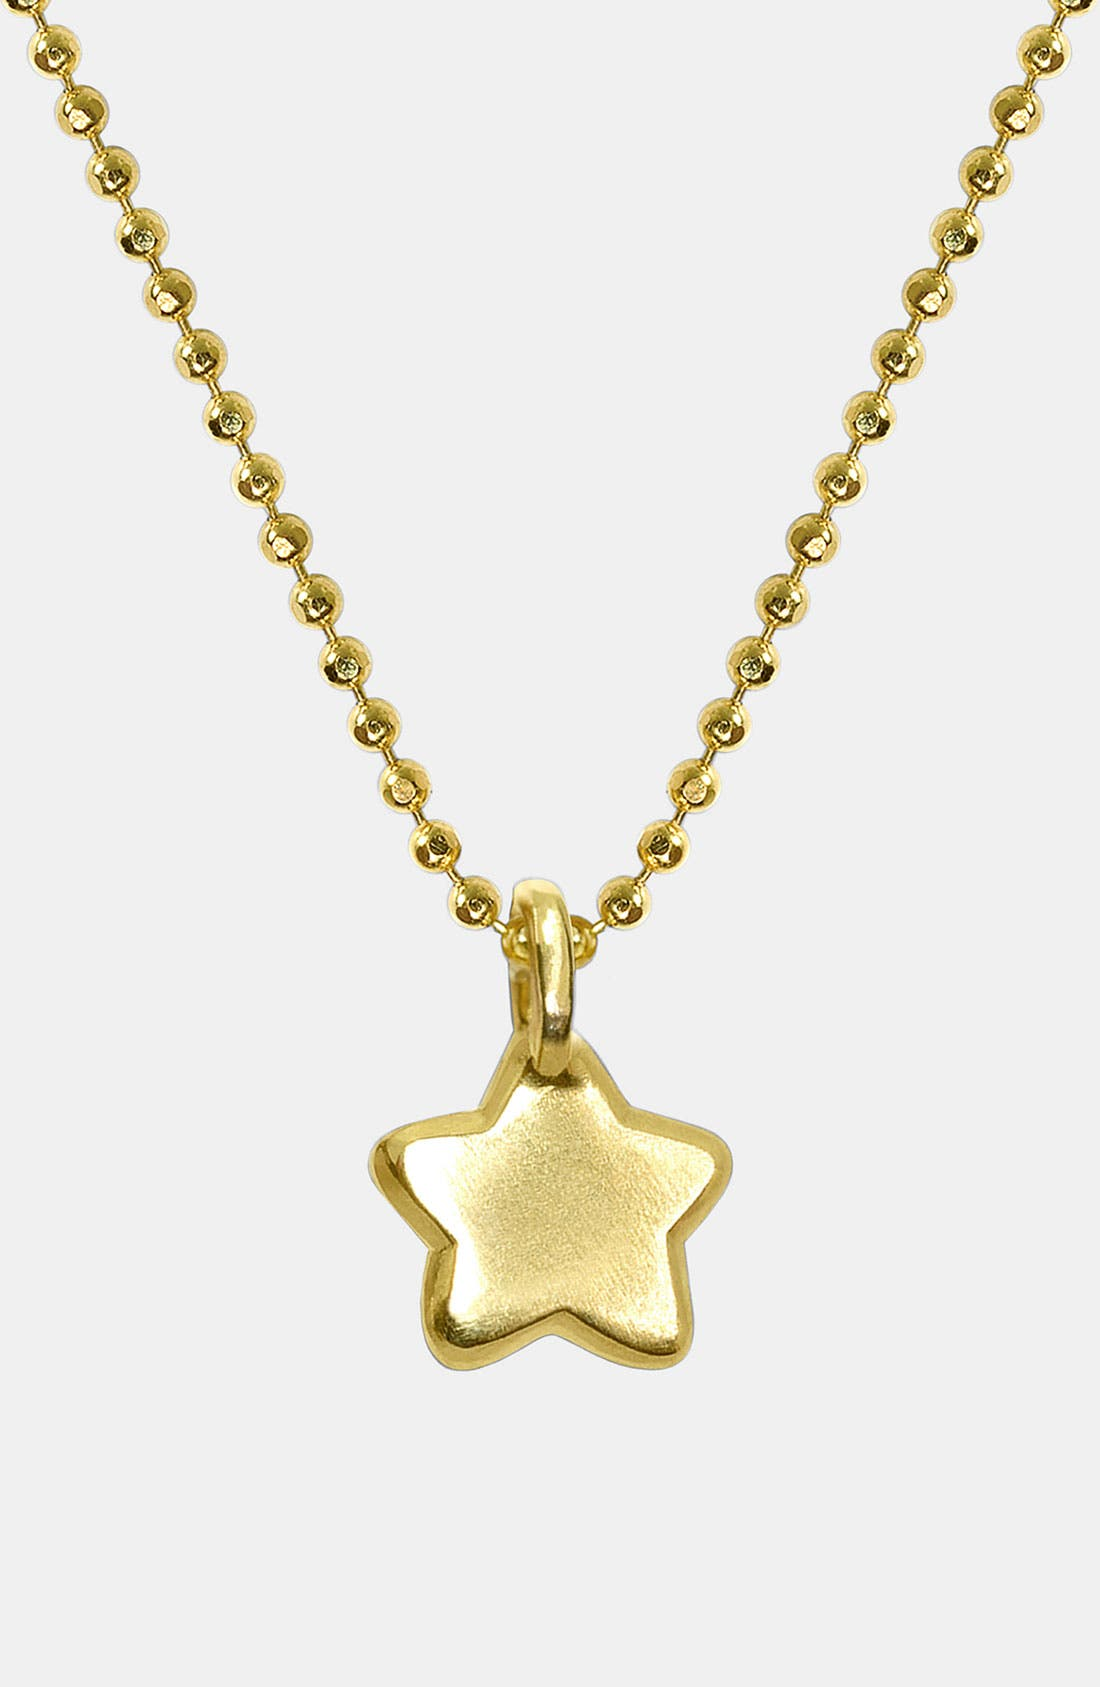 Alternate Image 1 Selected - Alex Woo 'Mini Star' 14k Gold Pendant Necklace